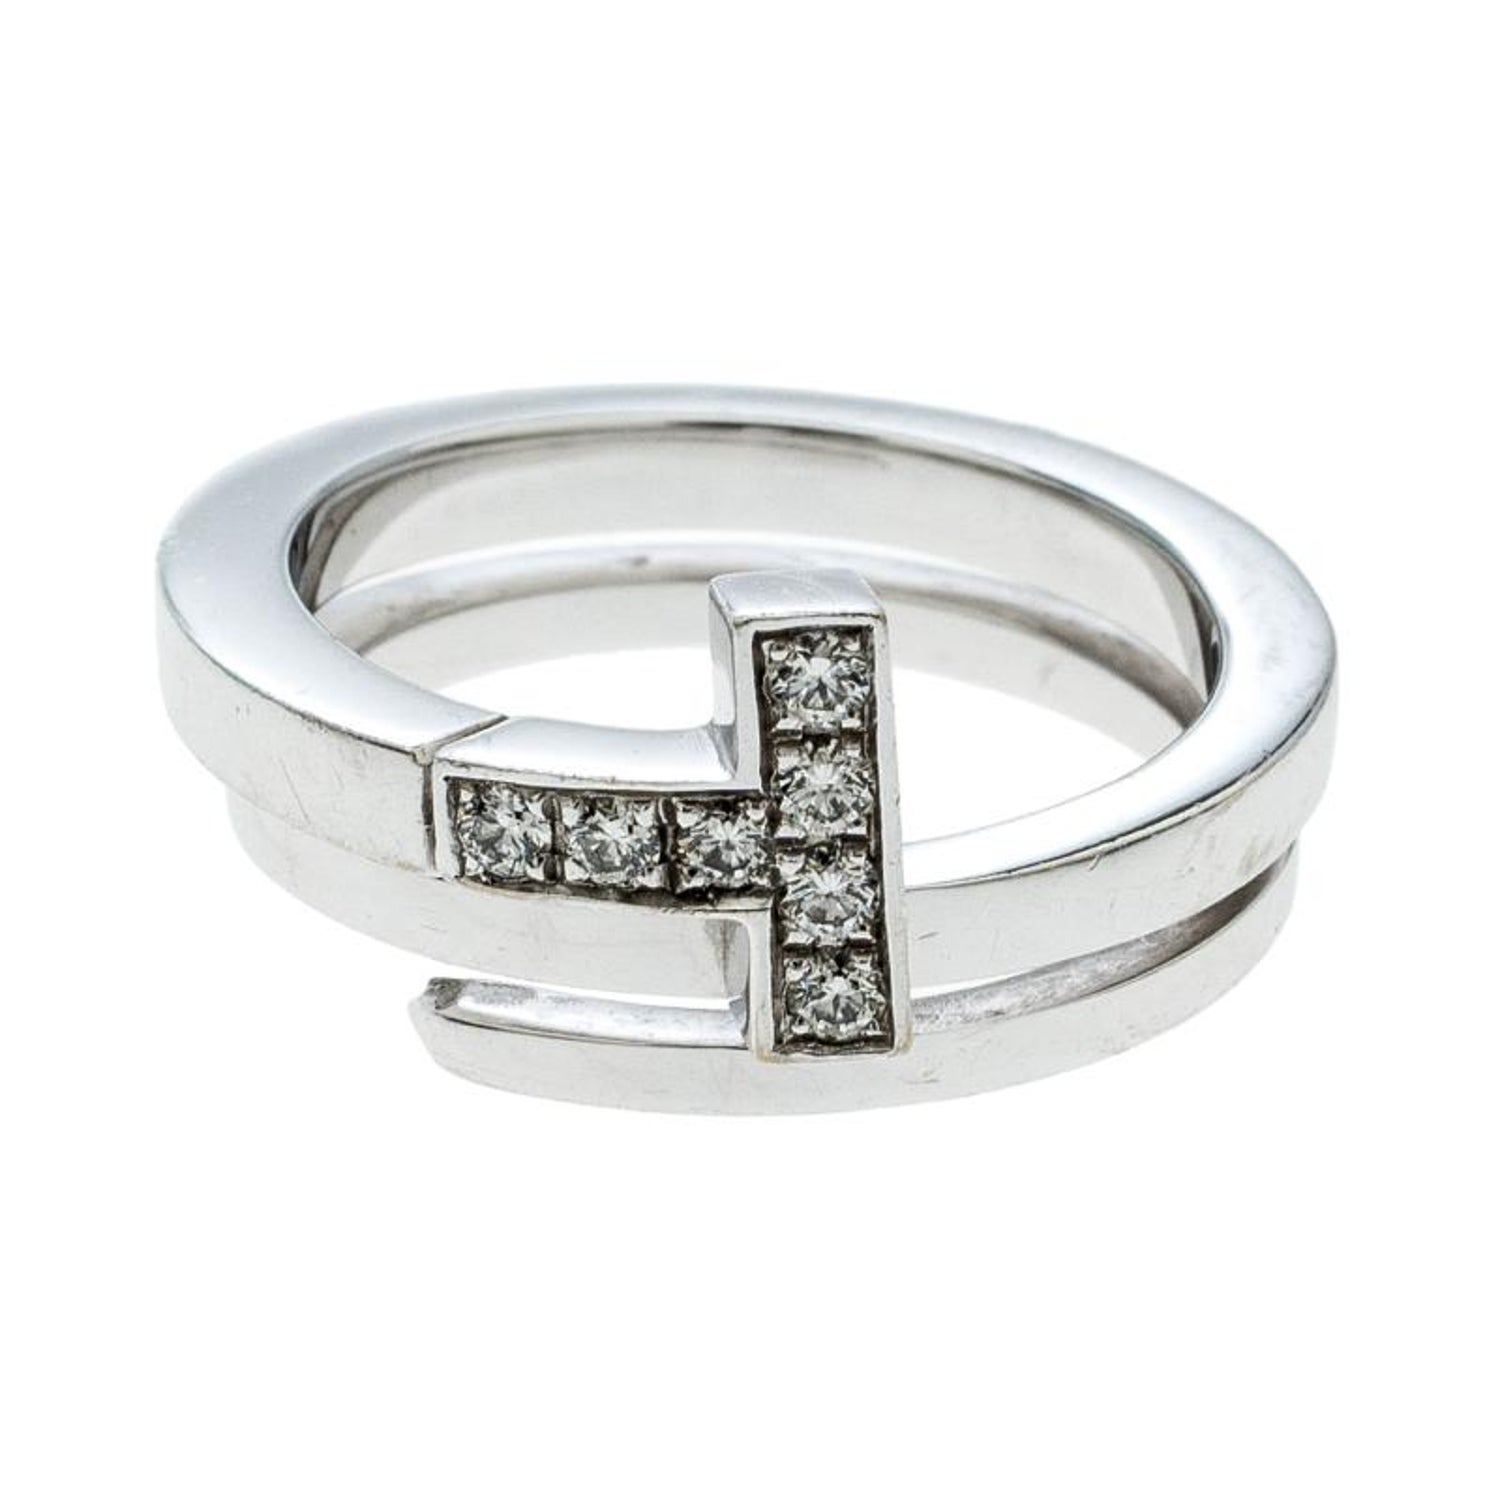 4e5fd7a2f Tiffany and Co. Tiffany T Wrap Diamond 18k White Gold Ring Size 50 For Sale  at 1stdibs